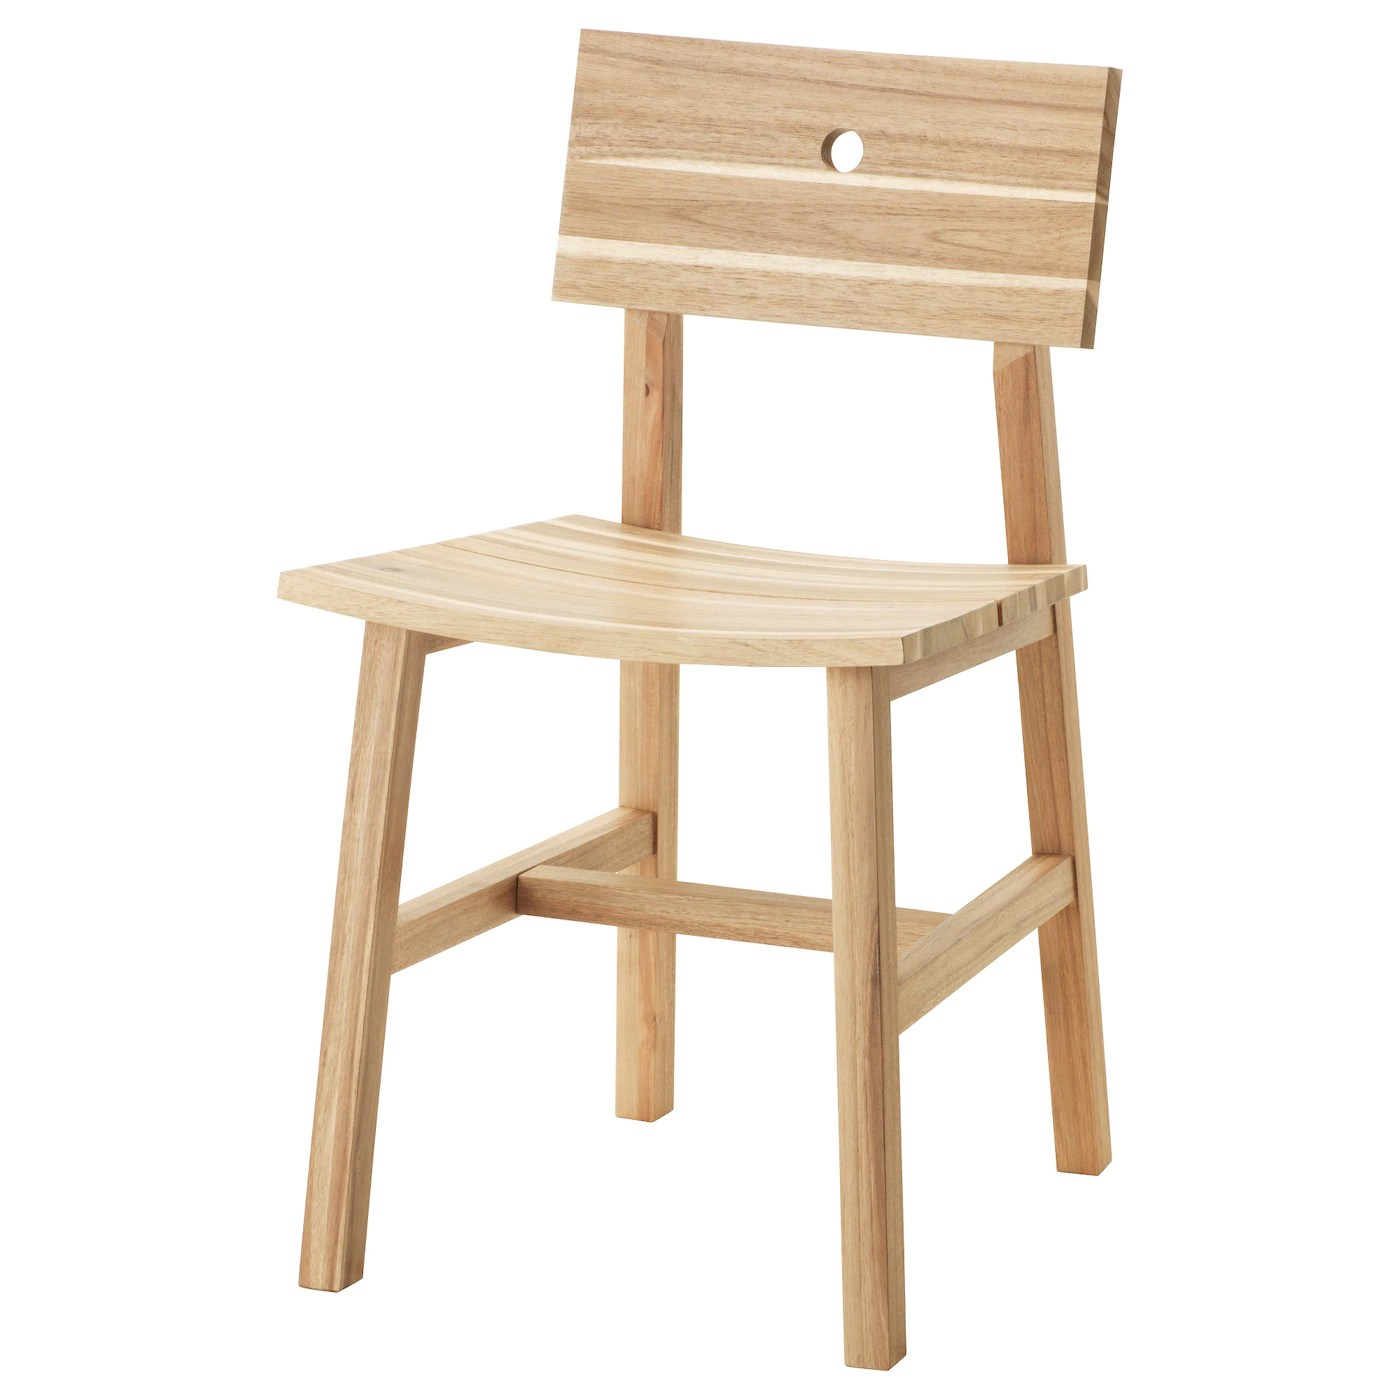 ikea wood chairs drive medical shower chair skogsta acacia